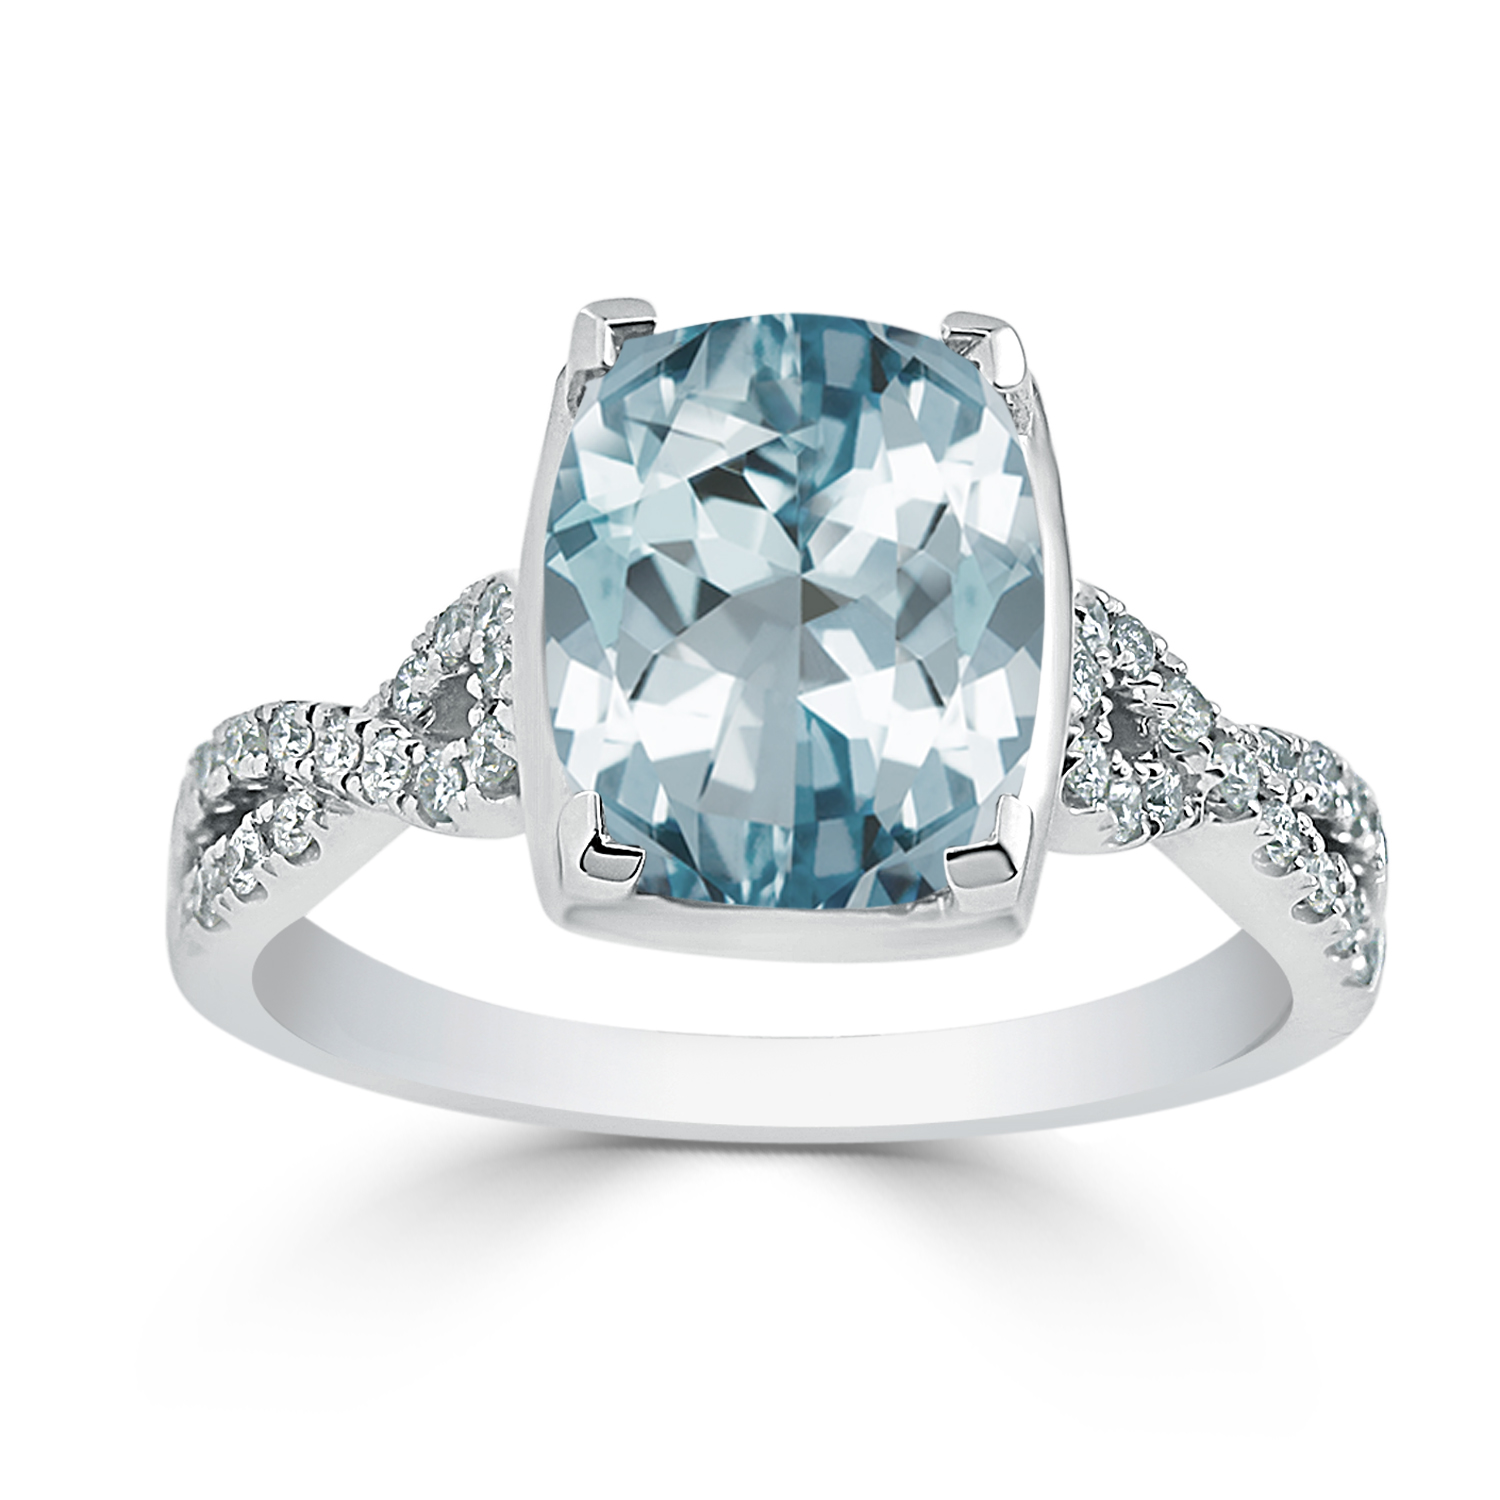 Halo Aquamarine Diamond Ring in 14K White Gold with 2.75 carat Cushion Aquamarine